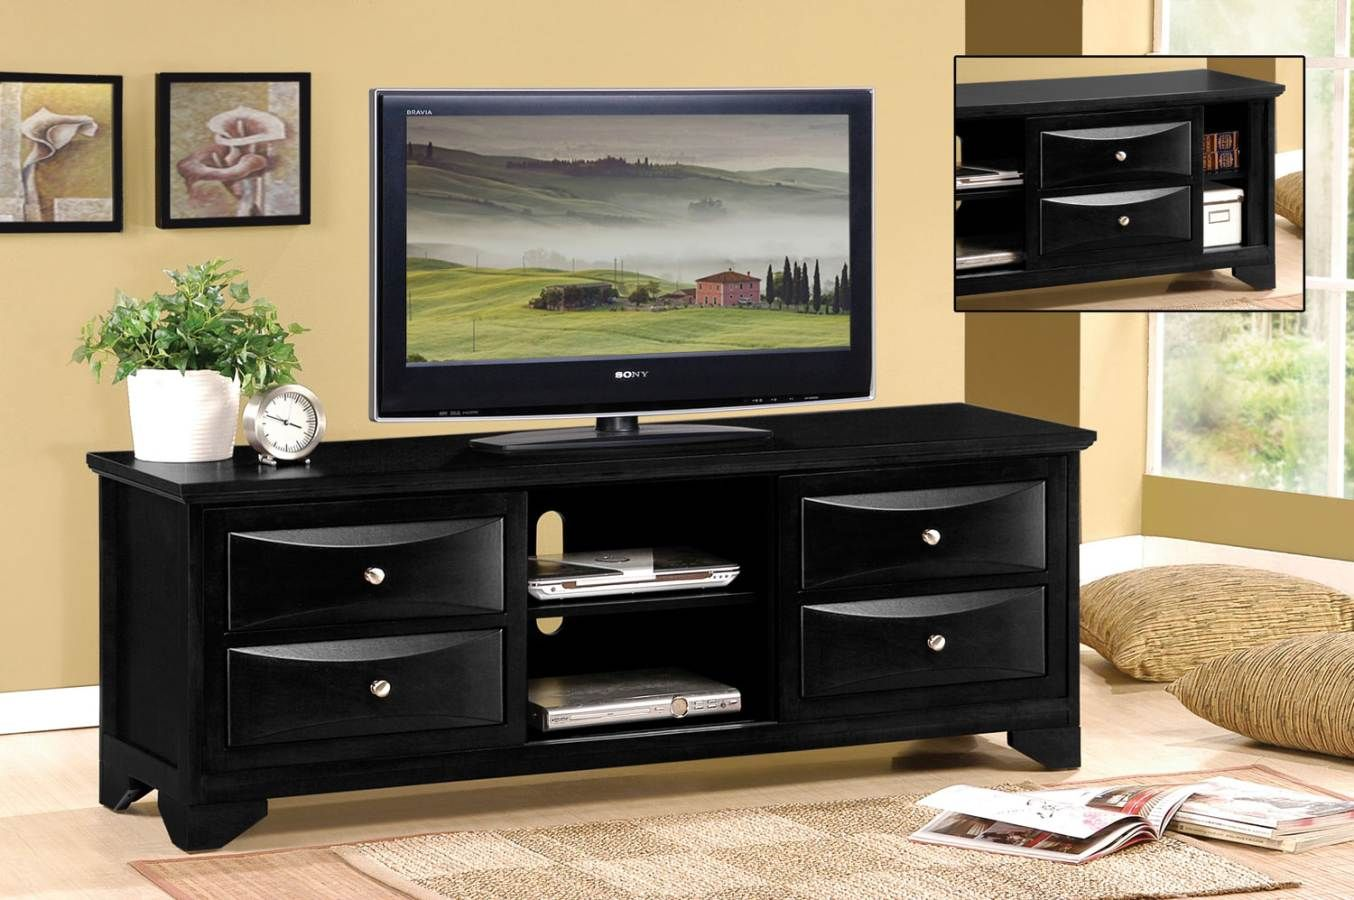 Transitional Black Tv Stand Tv Stand Luxury Tv Stand Black Wood Tv Stand With Drawers